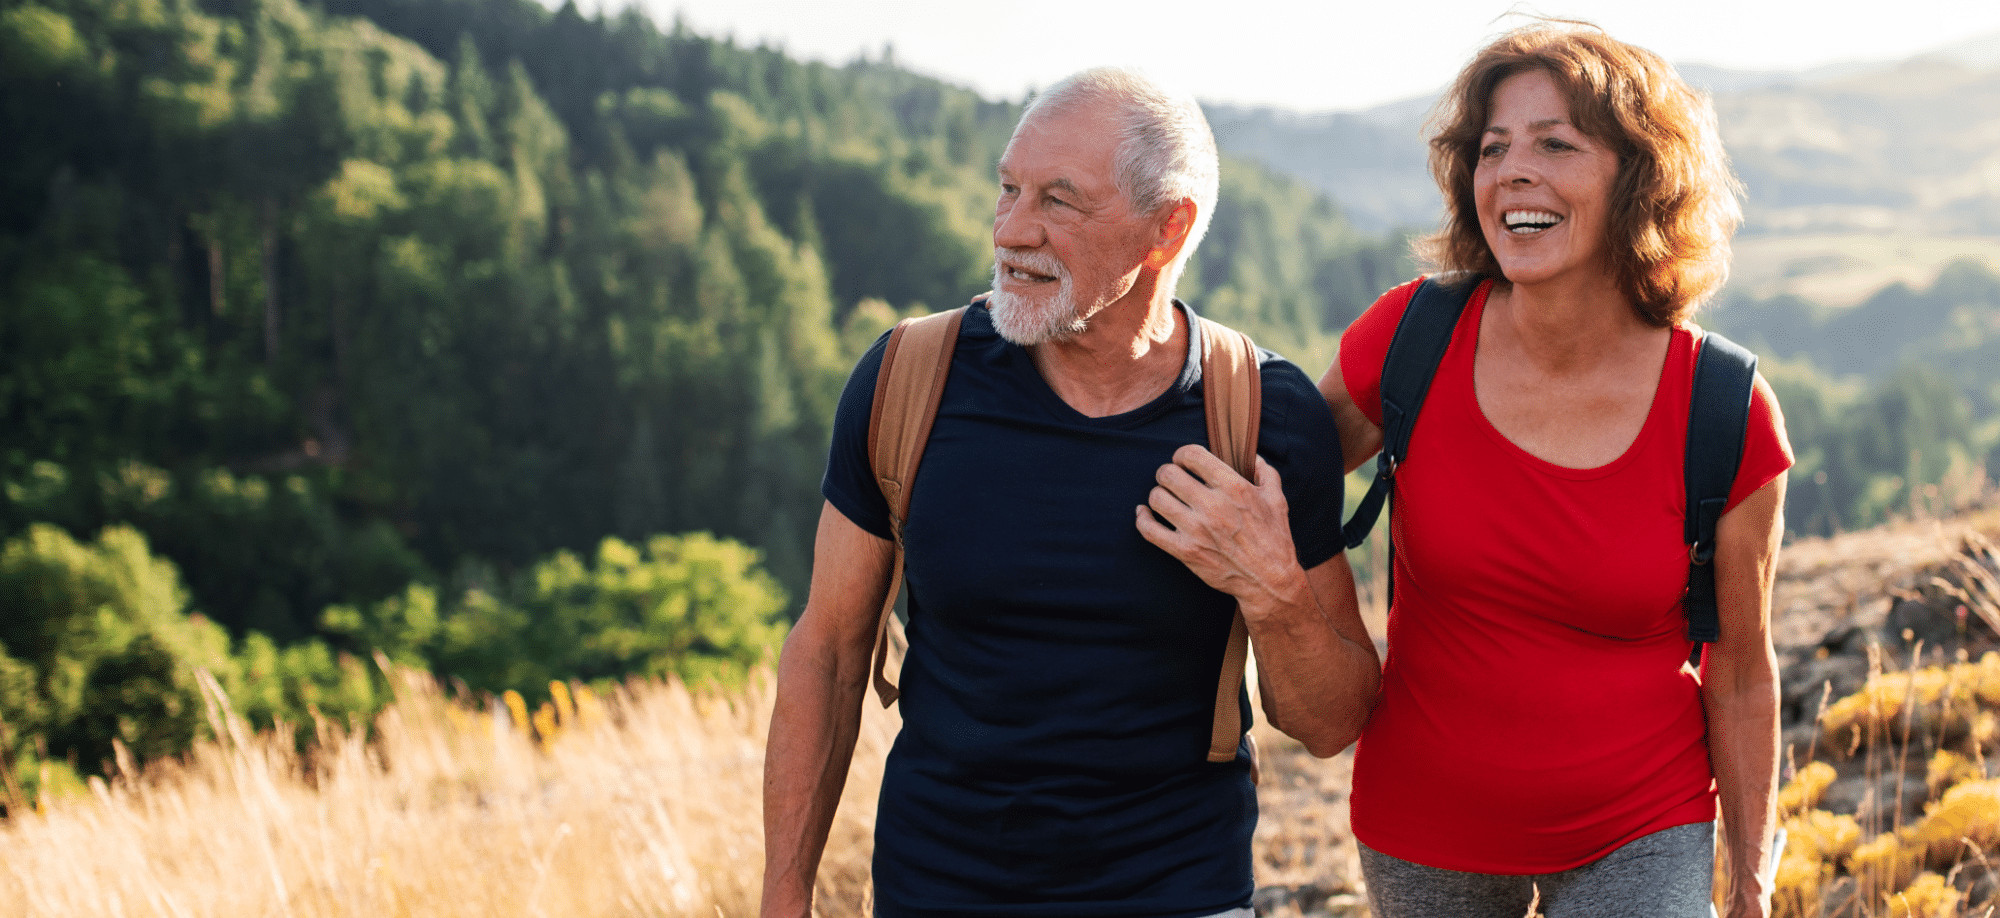 senior tourist couple travellers hiking in nature walking and talking